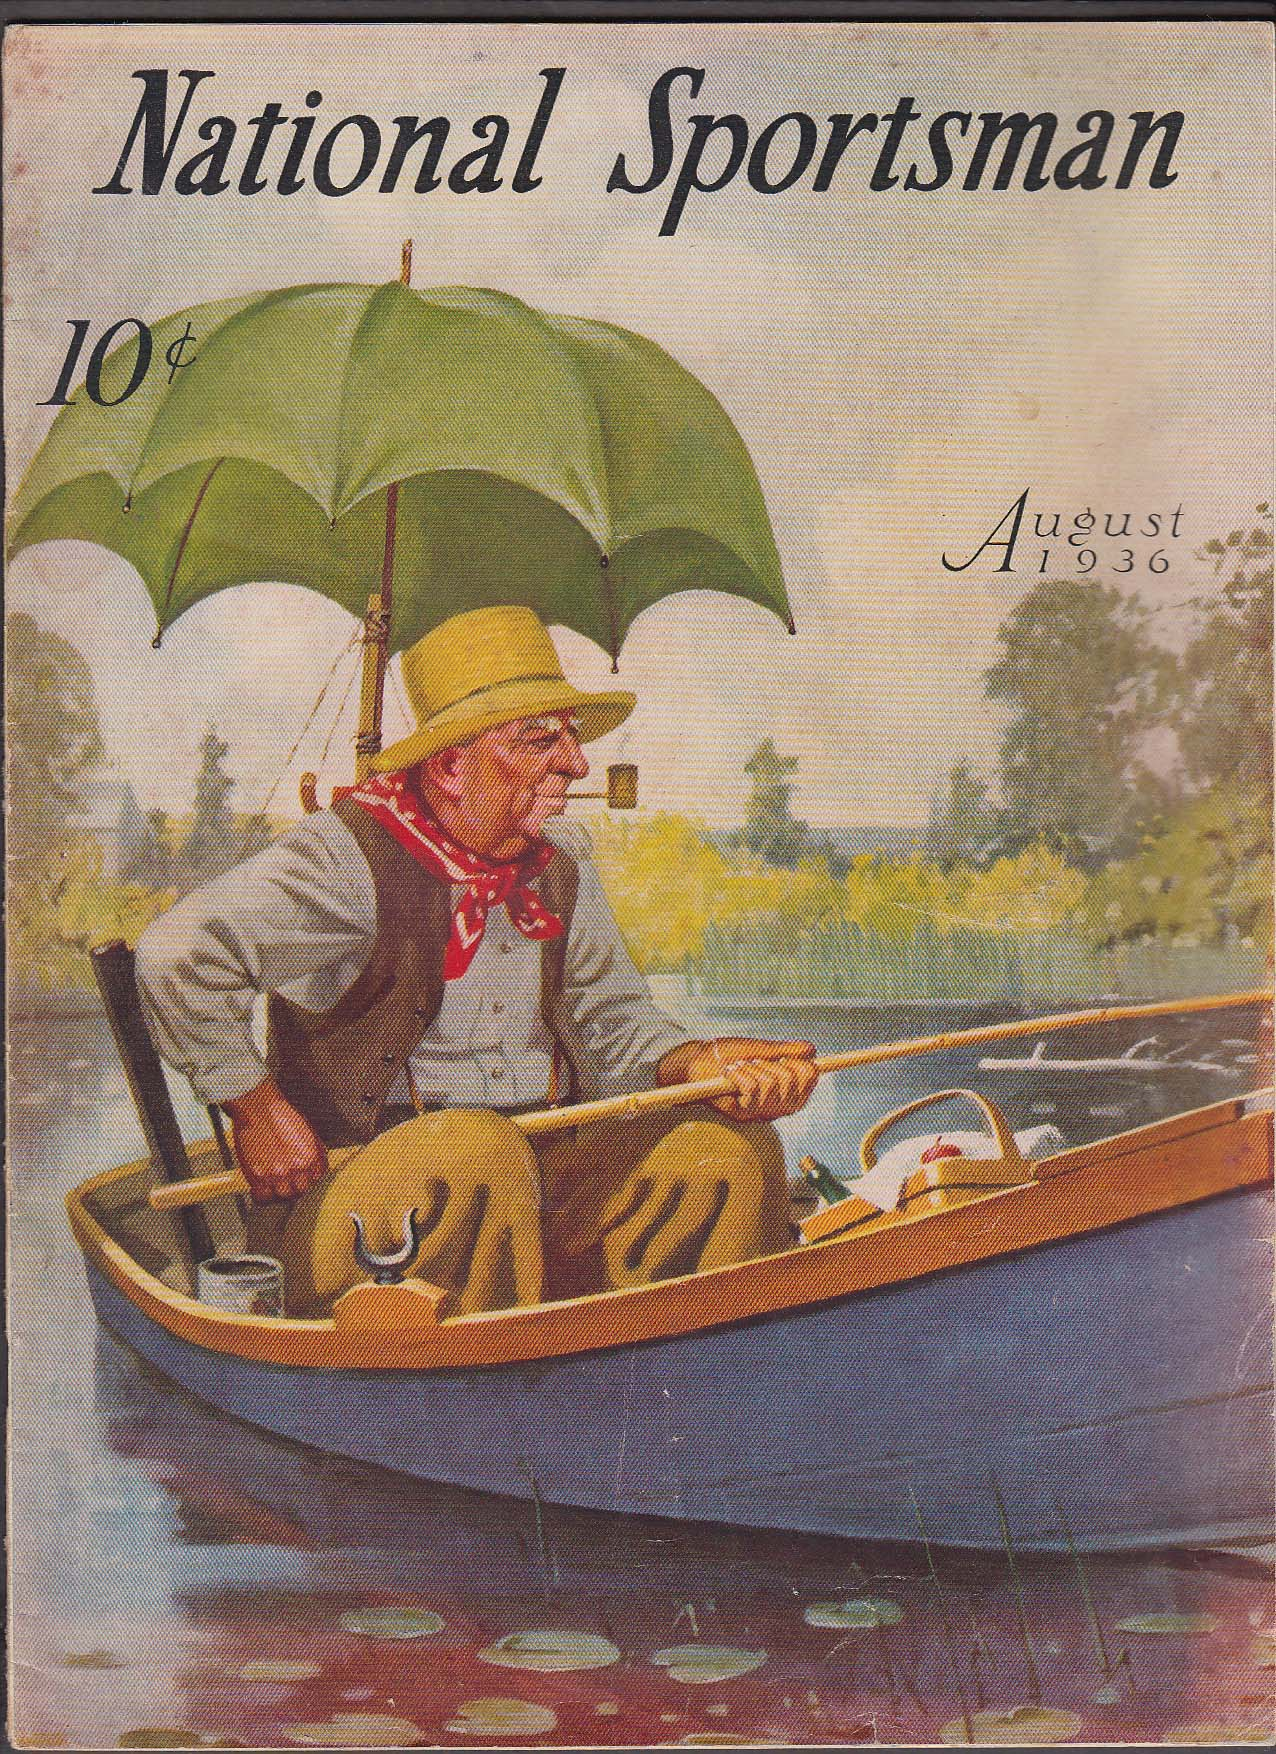 Image for NATIONAL SPORTSMAN John Hume Silver King Big Muskeg Trout ++ 8 1936